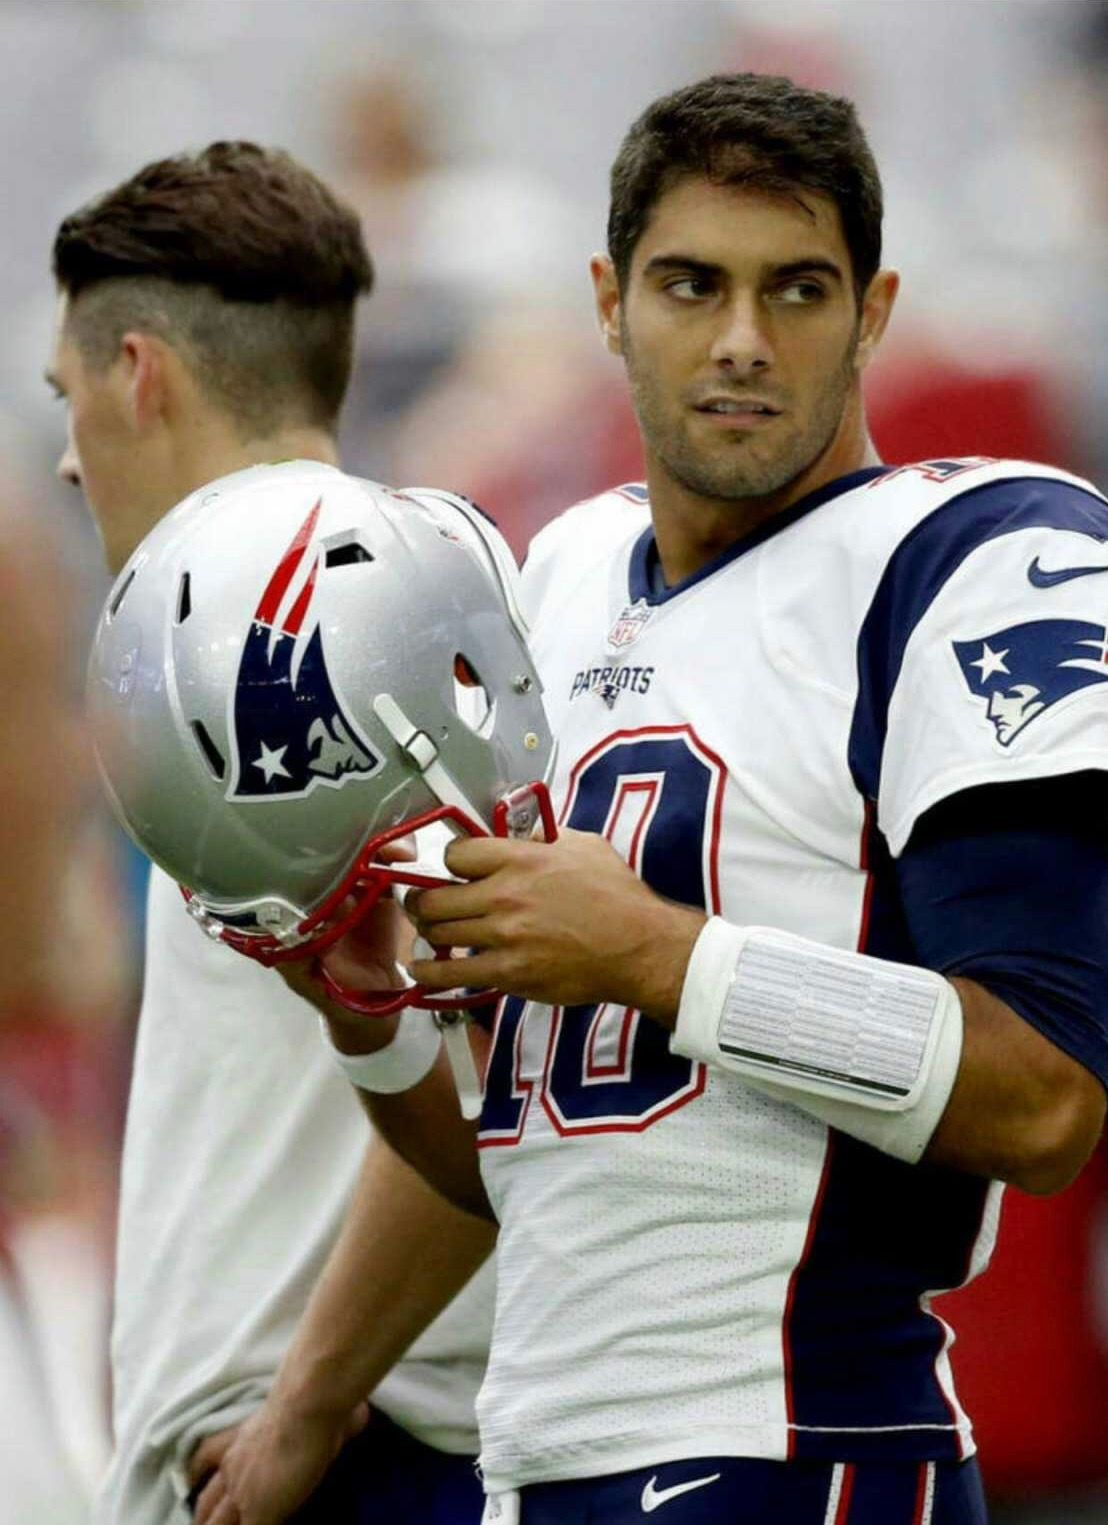 Pin By Goodicktion On Jimmy Garoppolo New England Patriots Logo New England Patriots Nfl Football Players